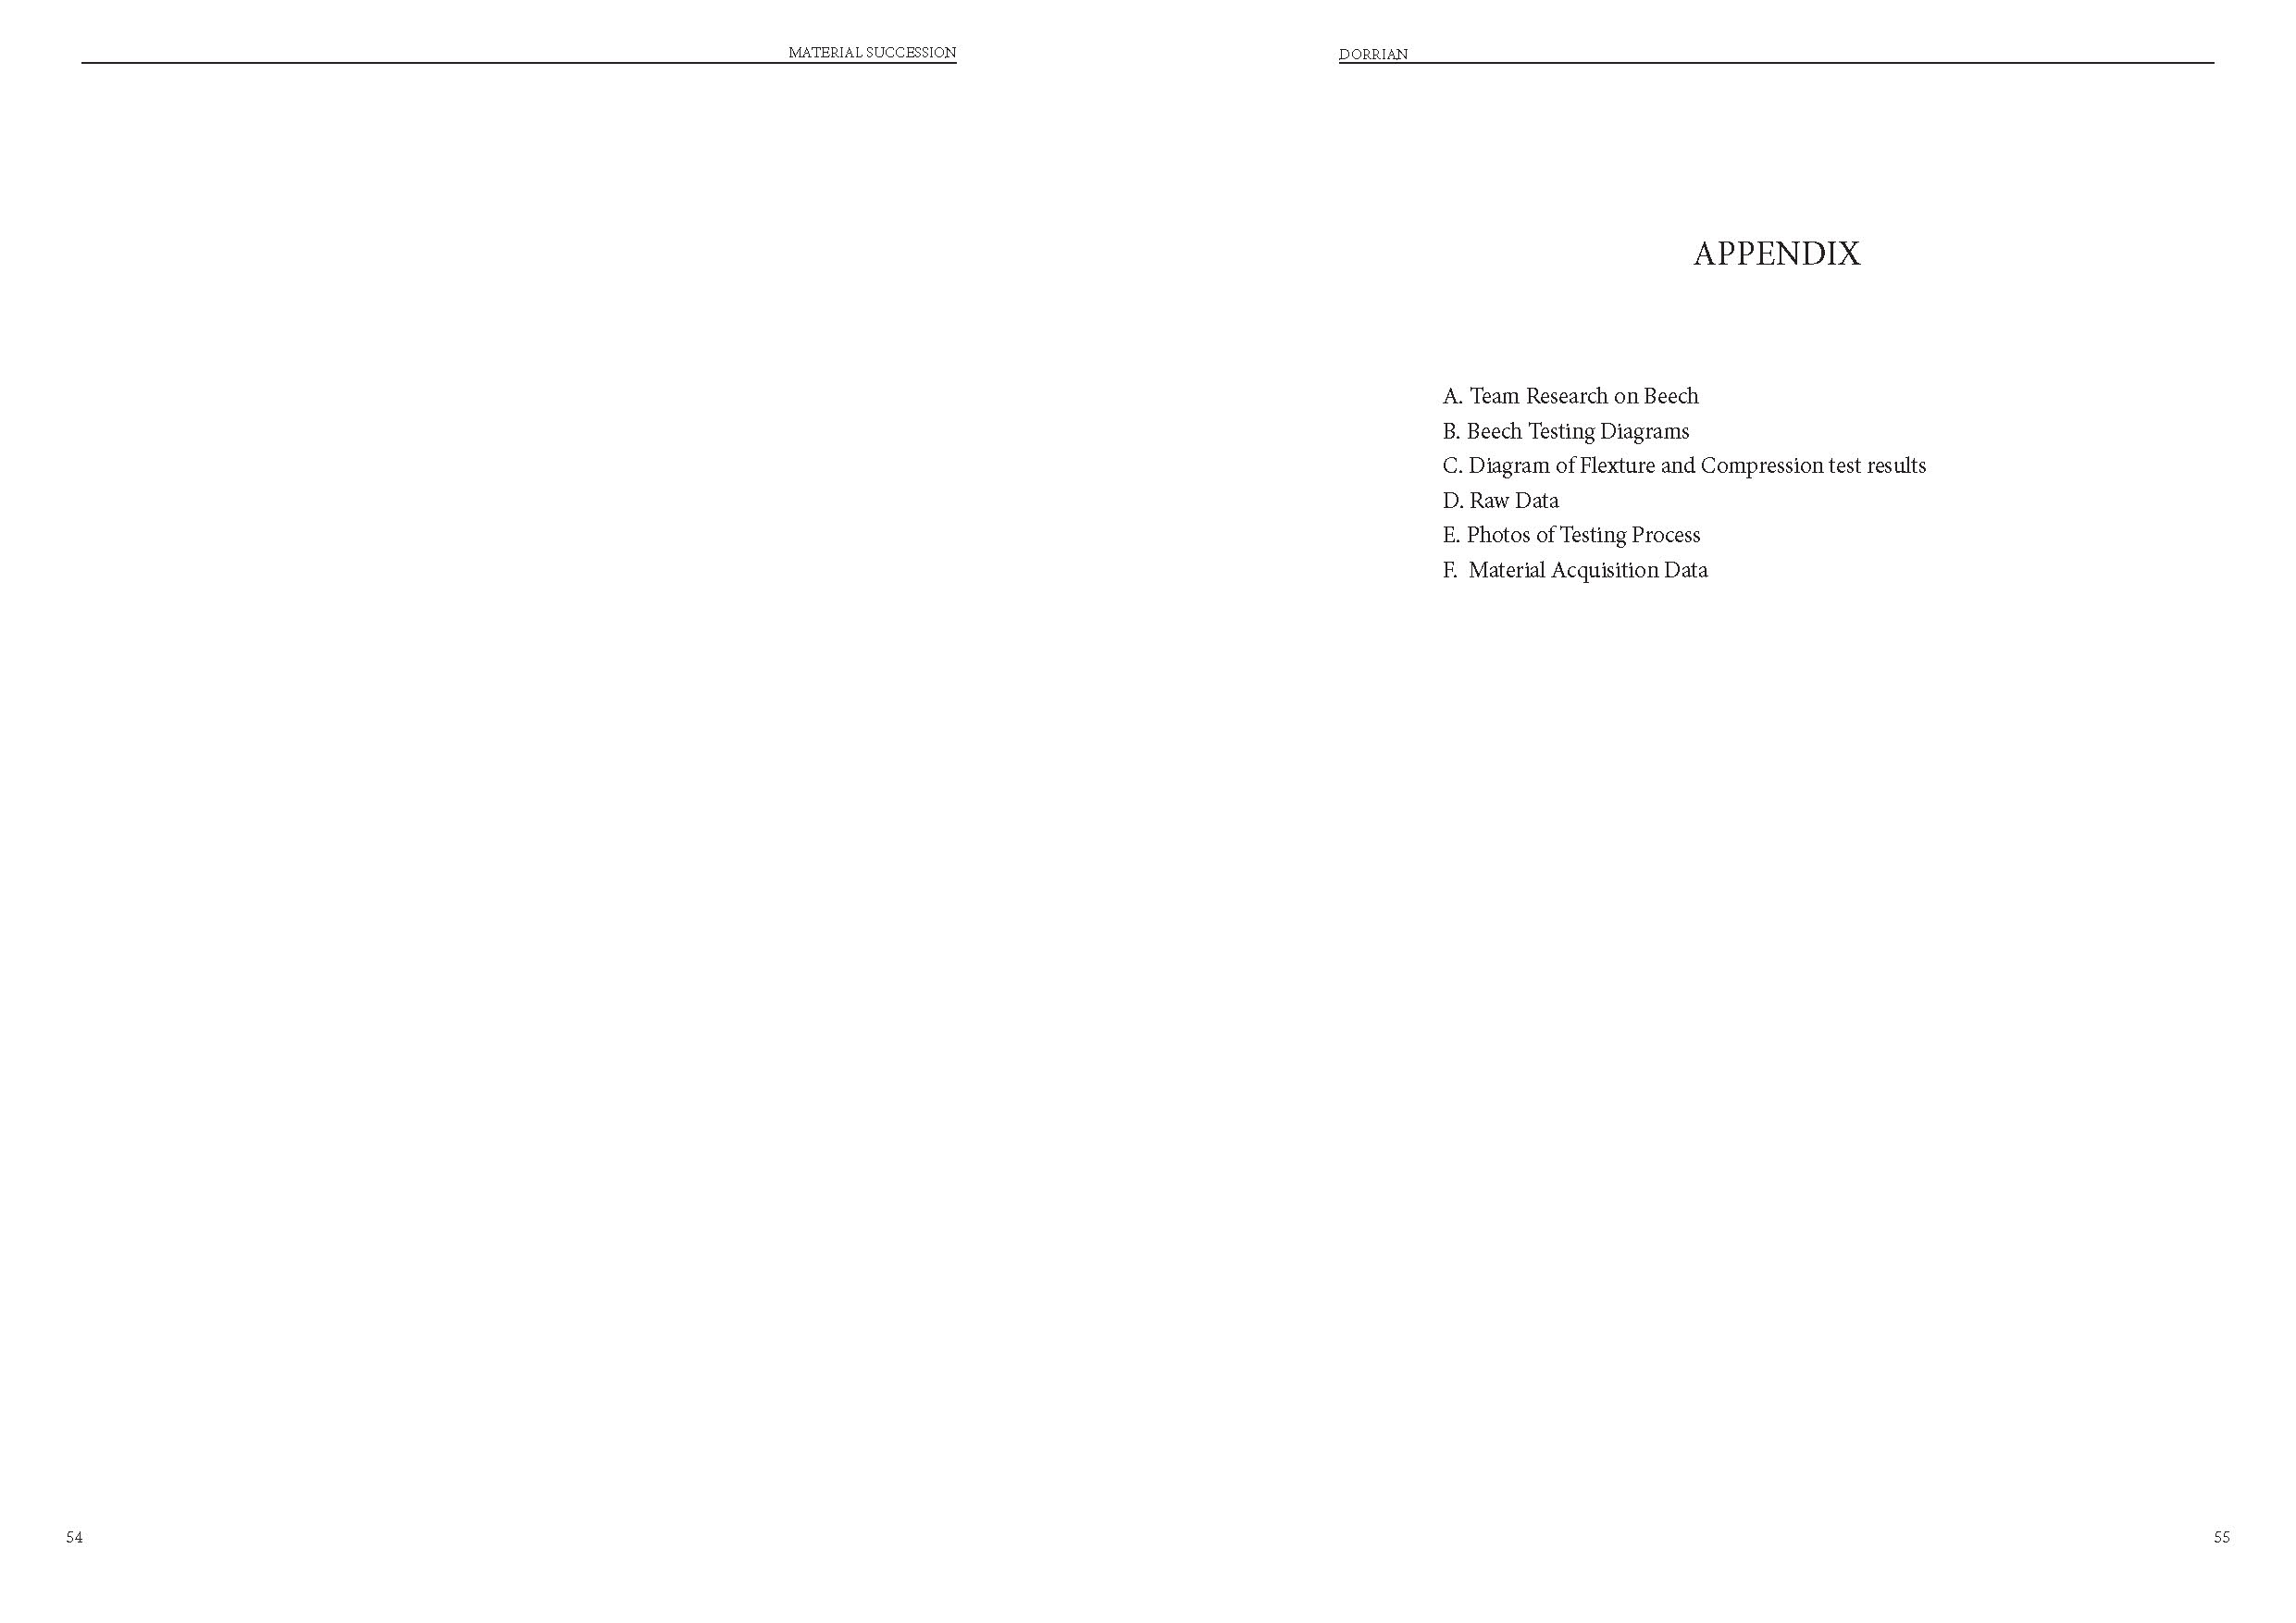 130131_Material SuccessionFORSUBMITTAL_Page_32.jpg